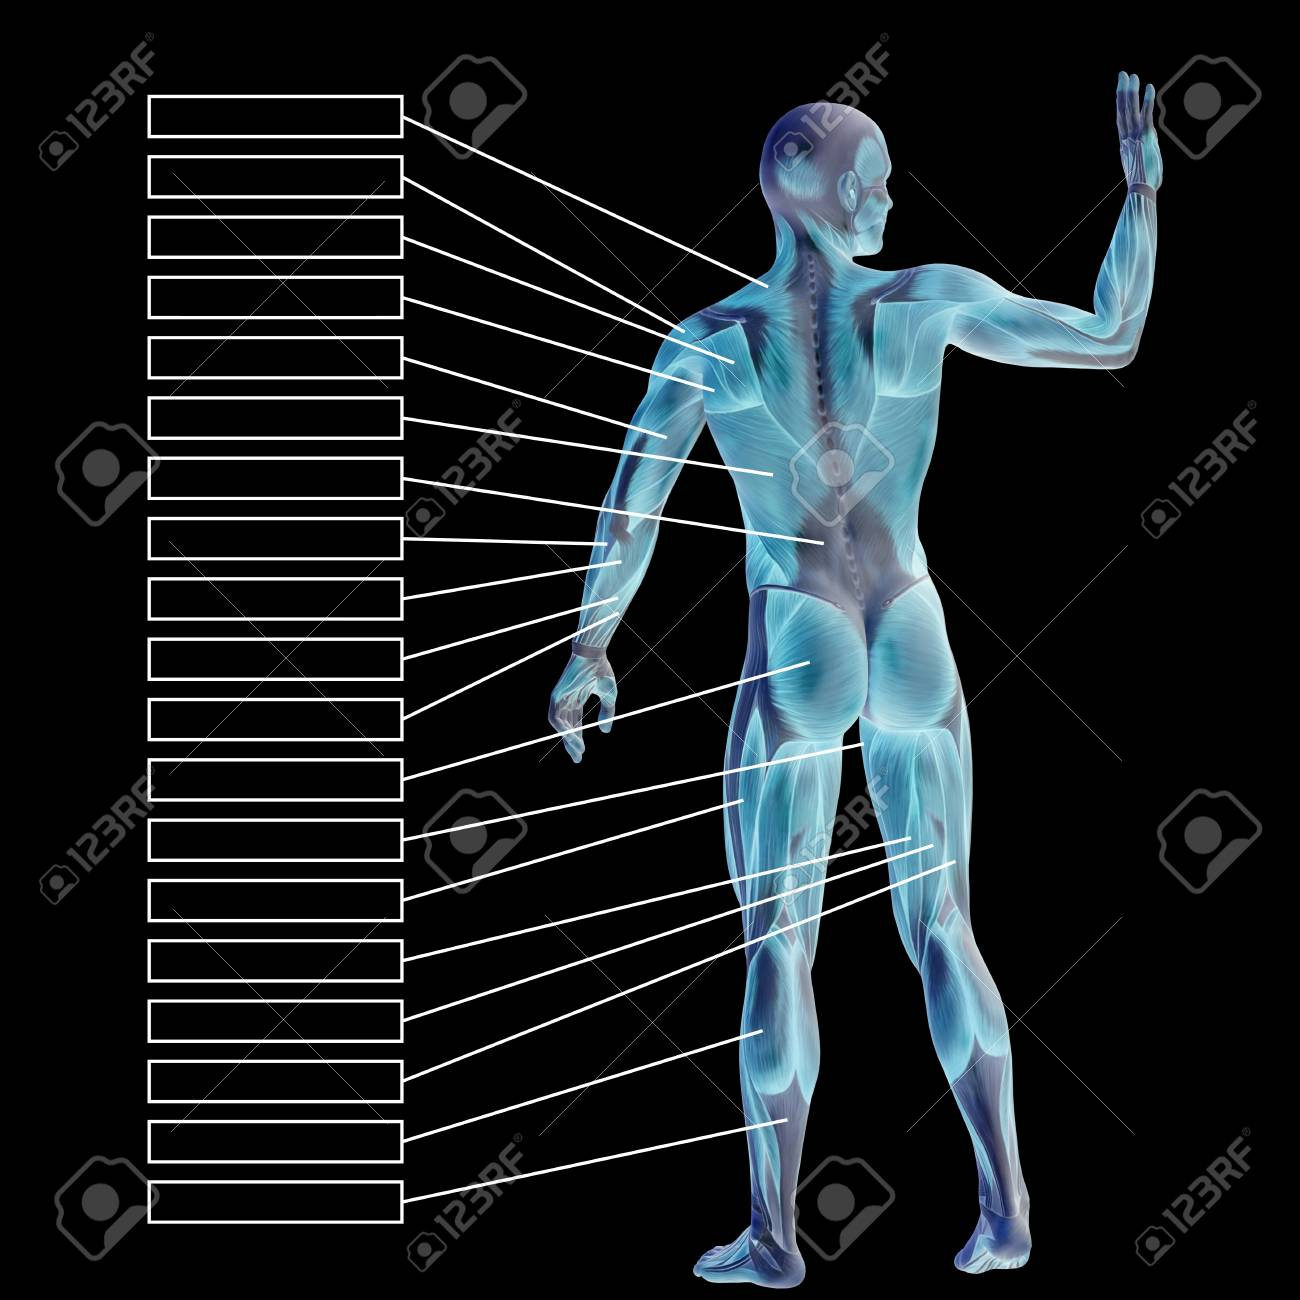 3D Human Male Anatomy With Muscles And Text Box Isolated On Black ...